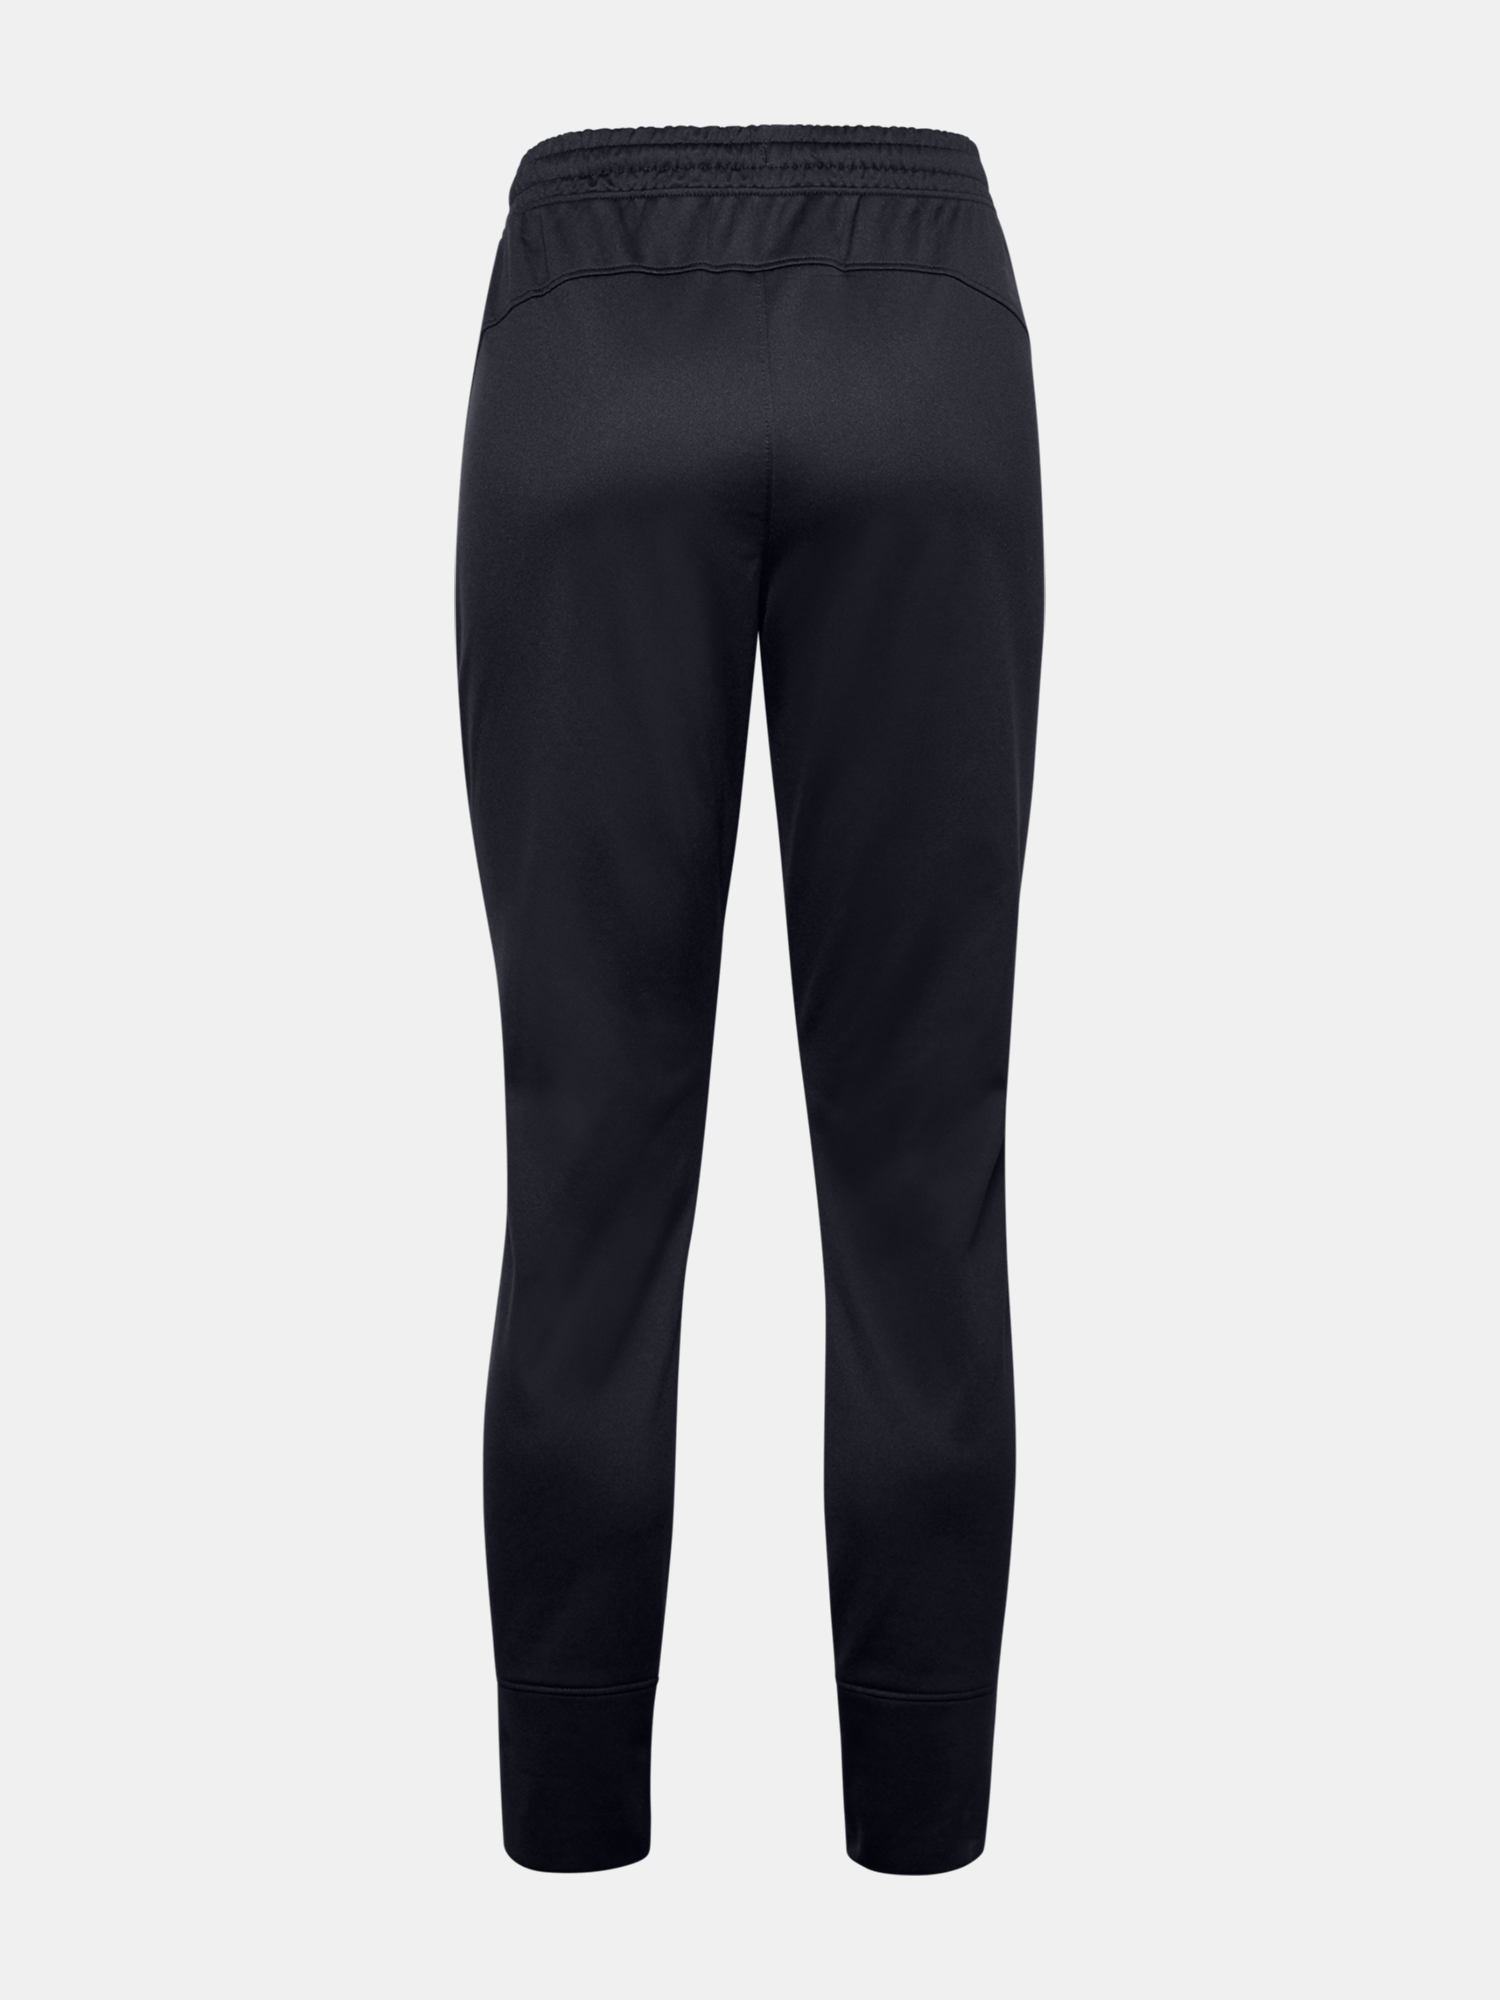 Nohavice Under Armour Recover Fleece Pants-BLK (4)